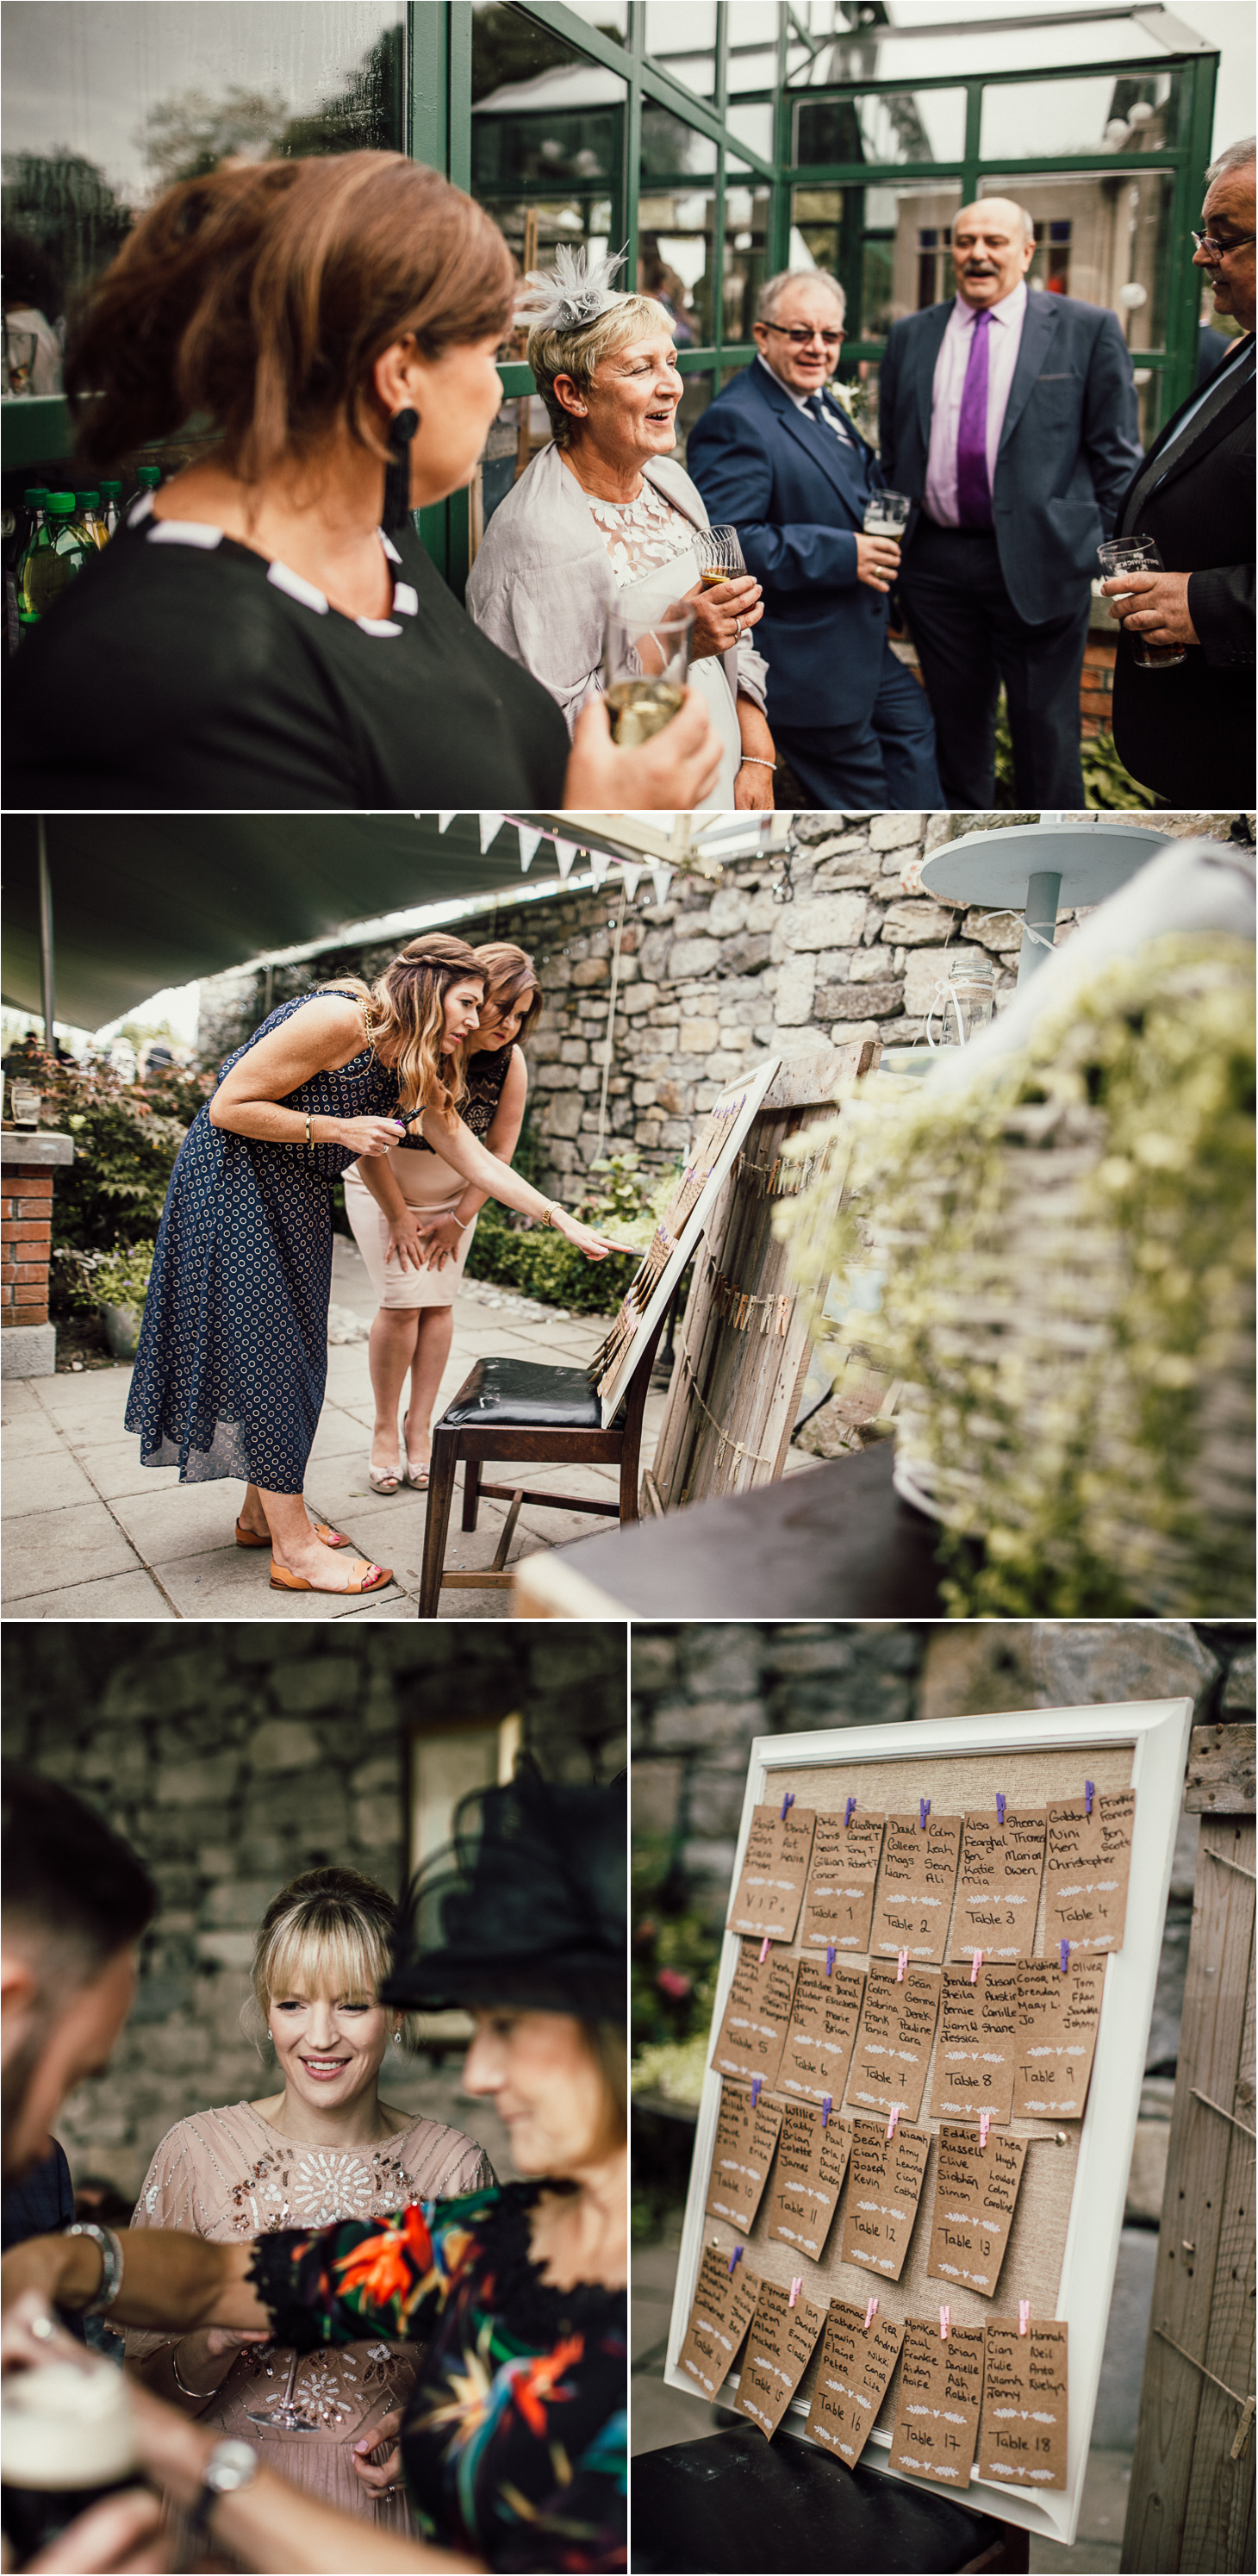 darren fitzpatrick photography. garden wedding.24